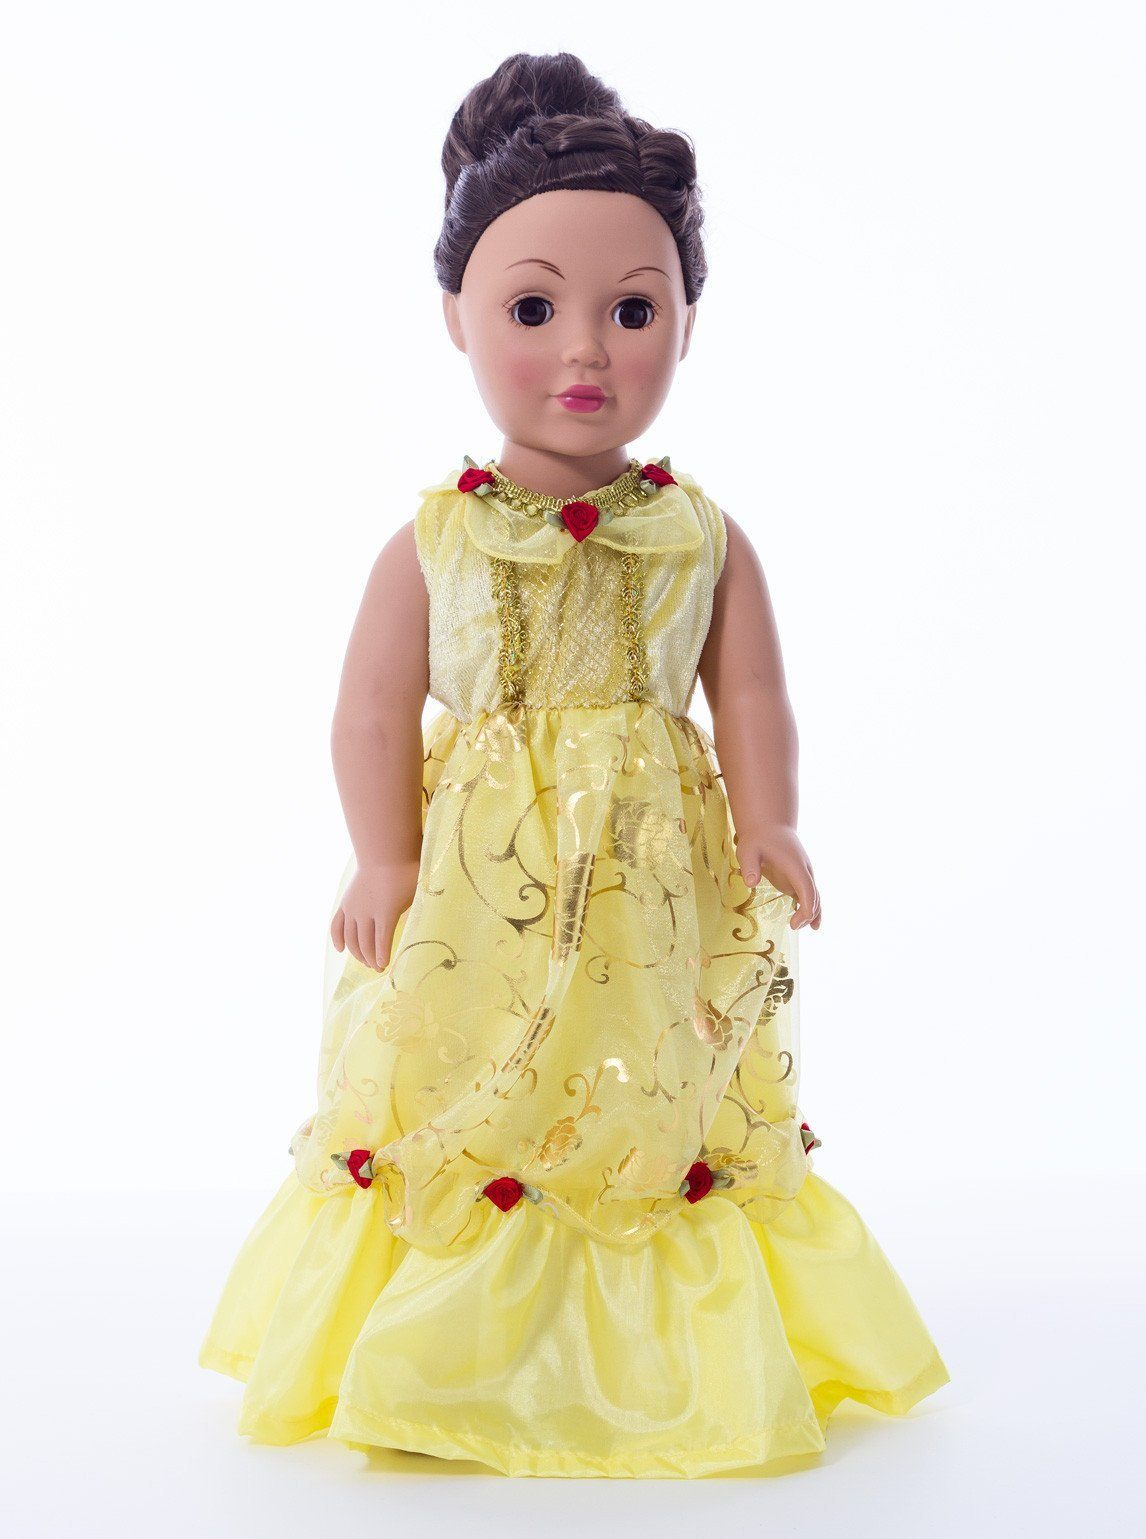 Doll Dresses & Accessories - Doll Dress Yellow Beauty